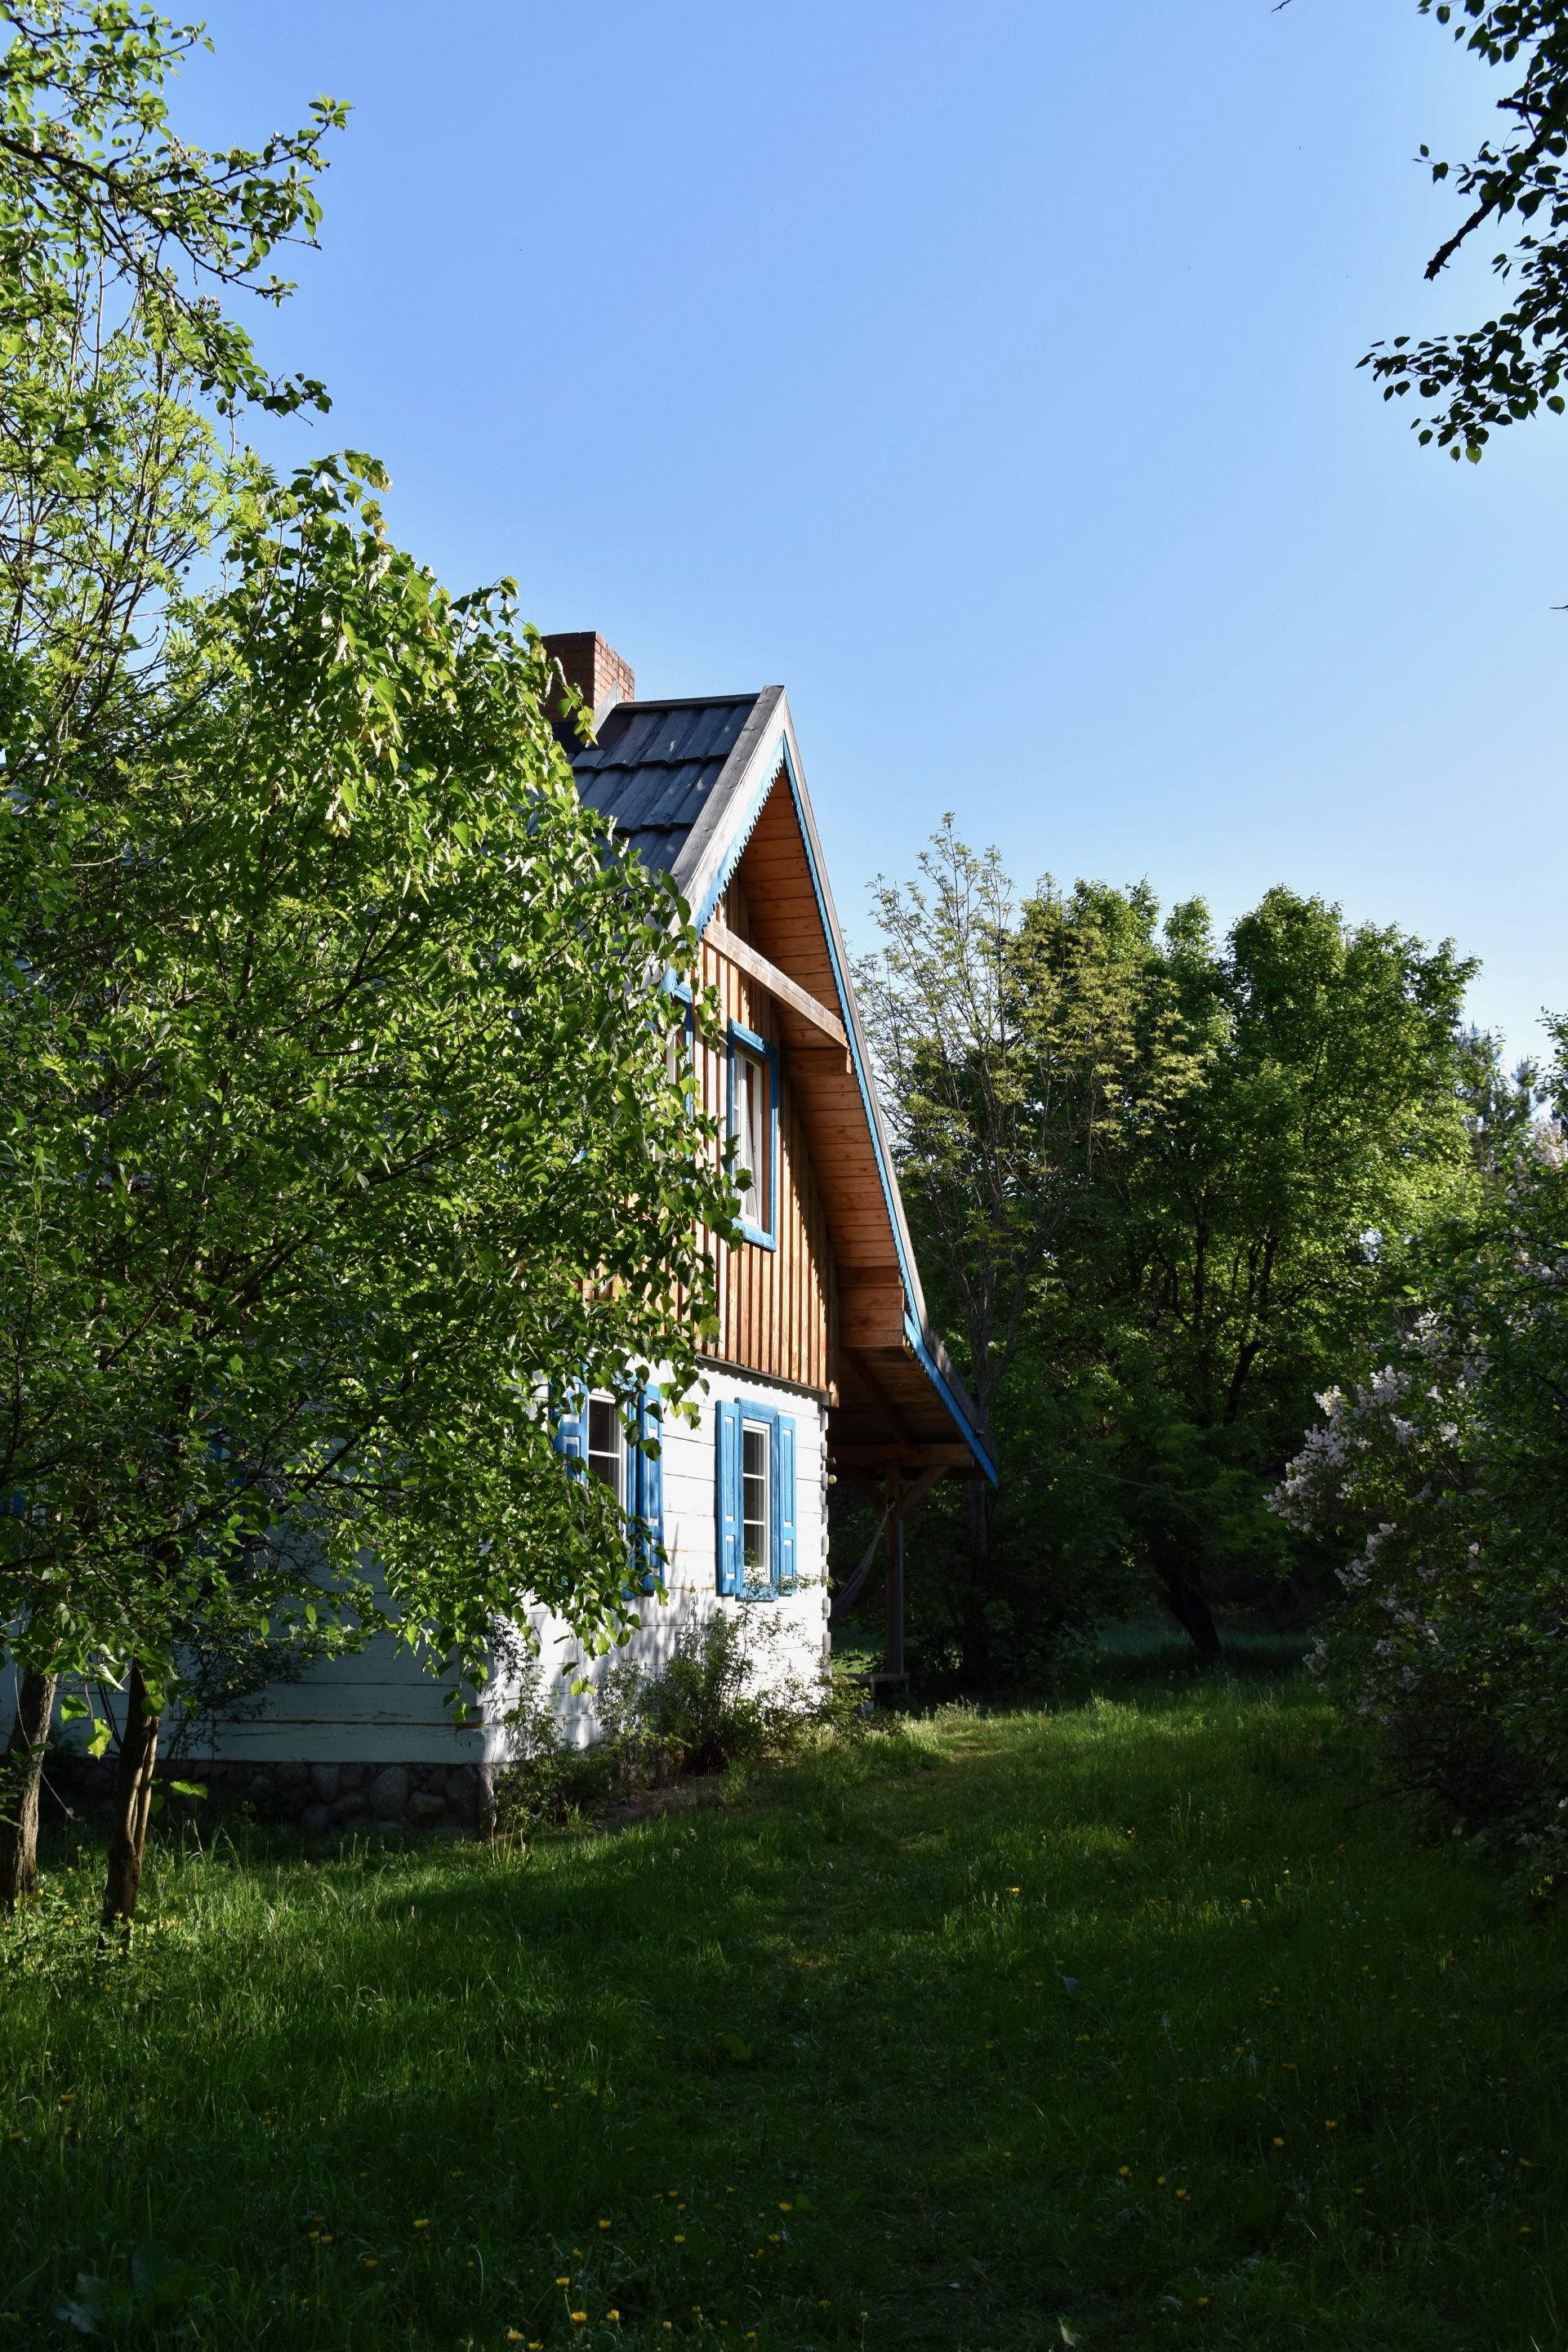 White and blue wooden country house surrounded by trees